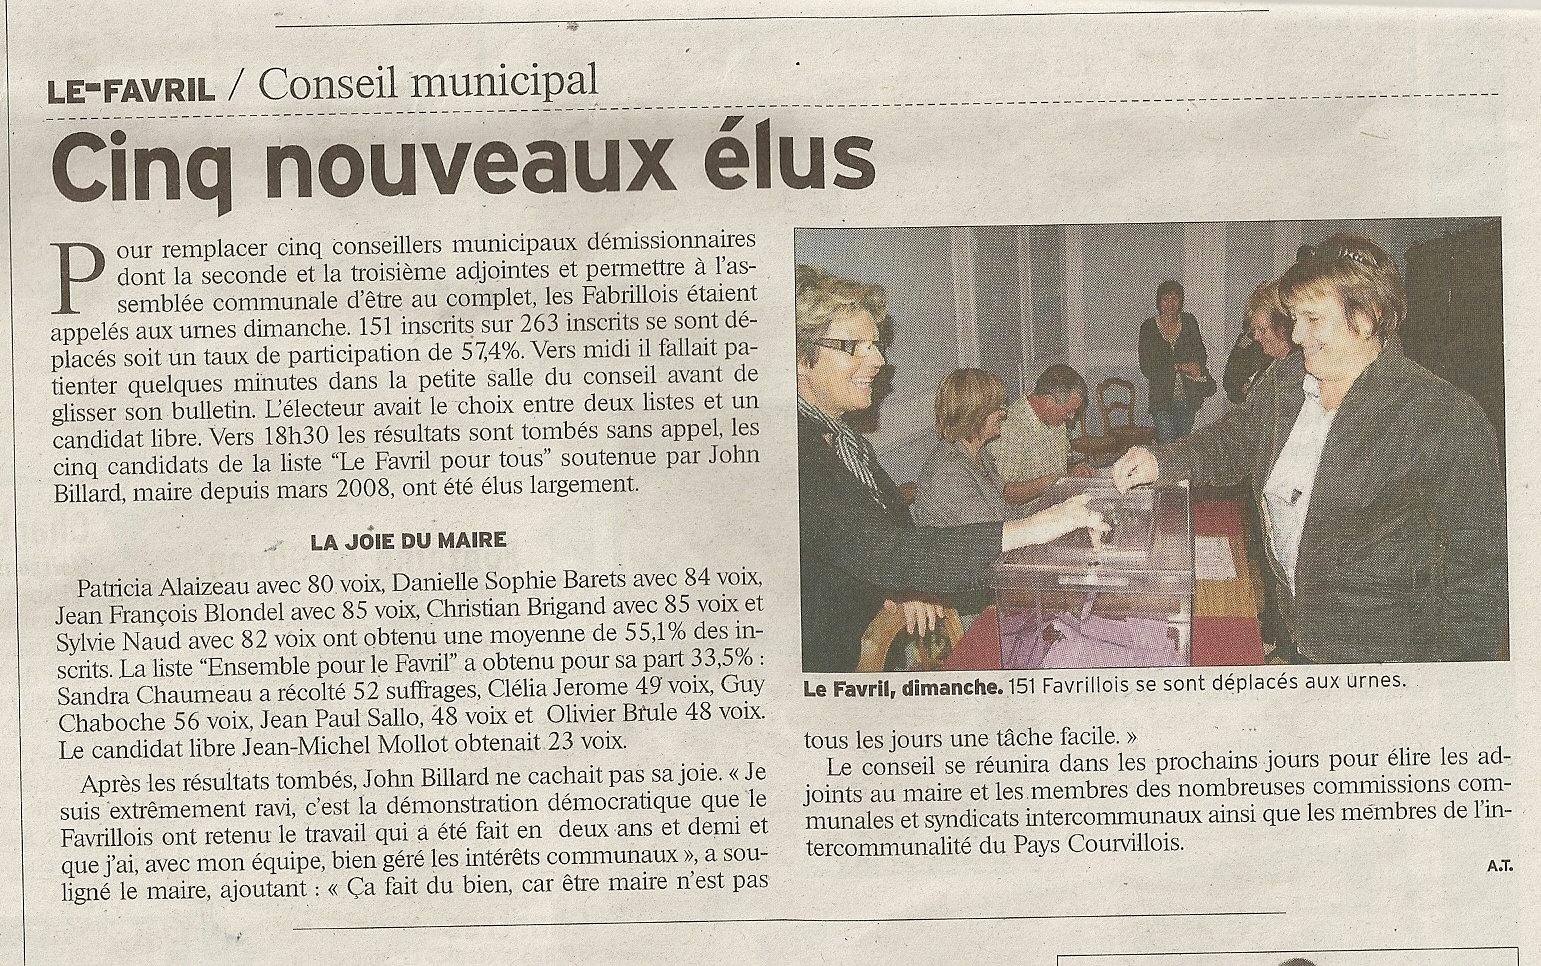 2010-echo-rep-election-complementaire